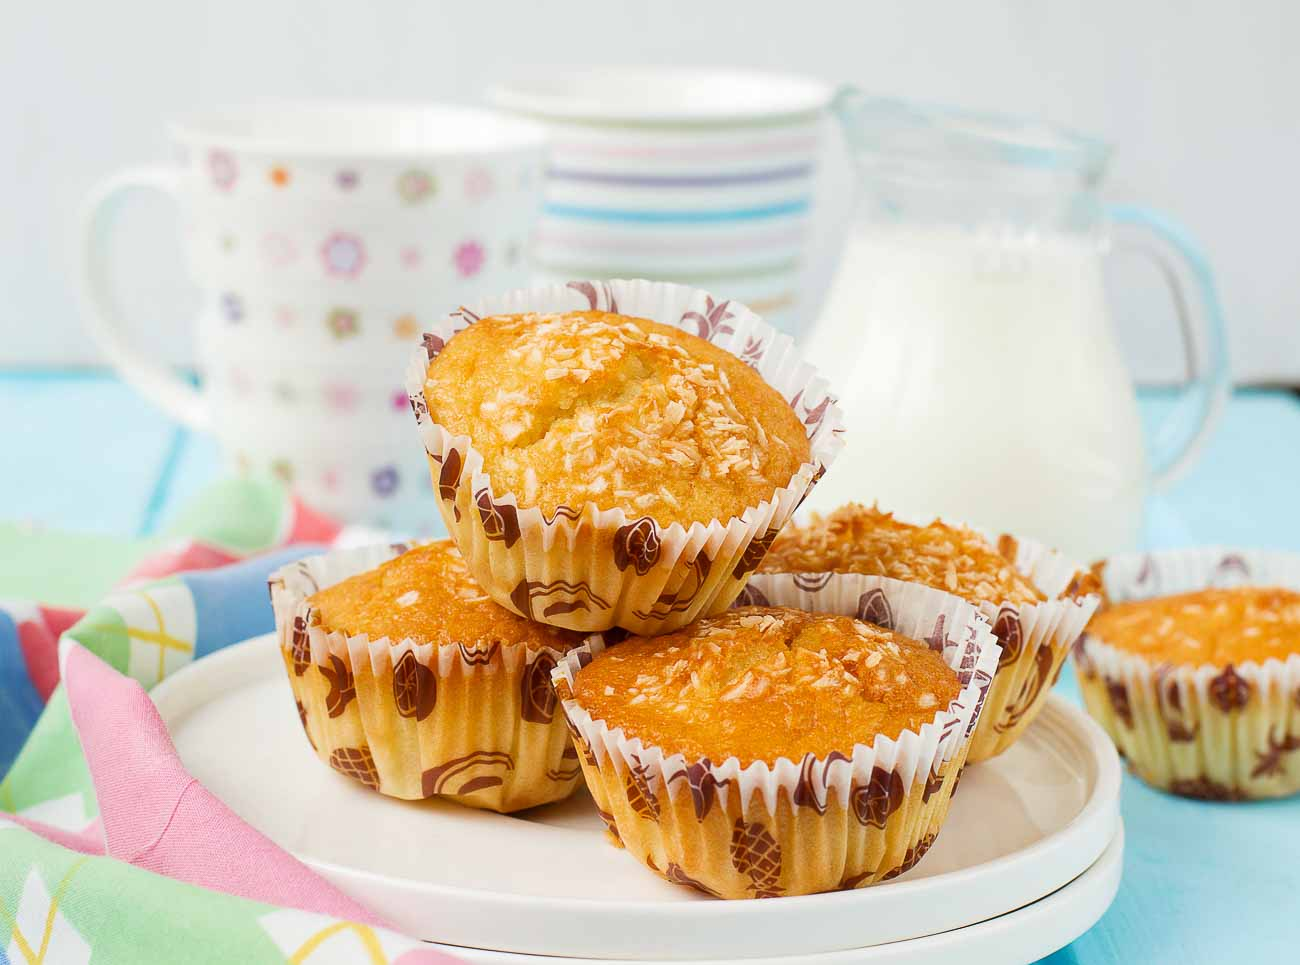 Eggless Whole Wheat Pineapple Muffins Recipe